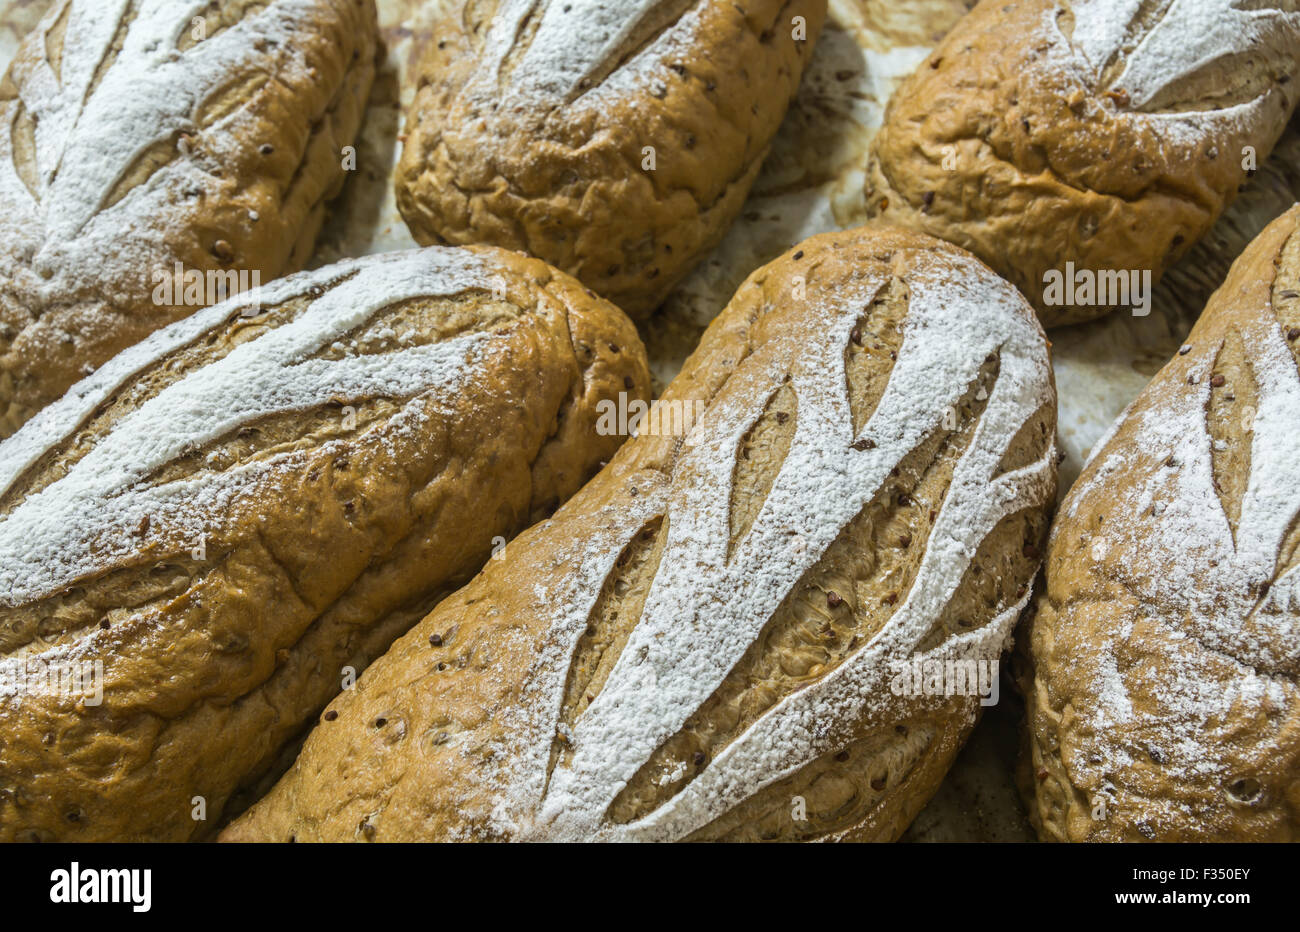 Multi Groove Stock Photos Images Alamy Grooved Wiring Board Malt Bread Icing Image